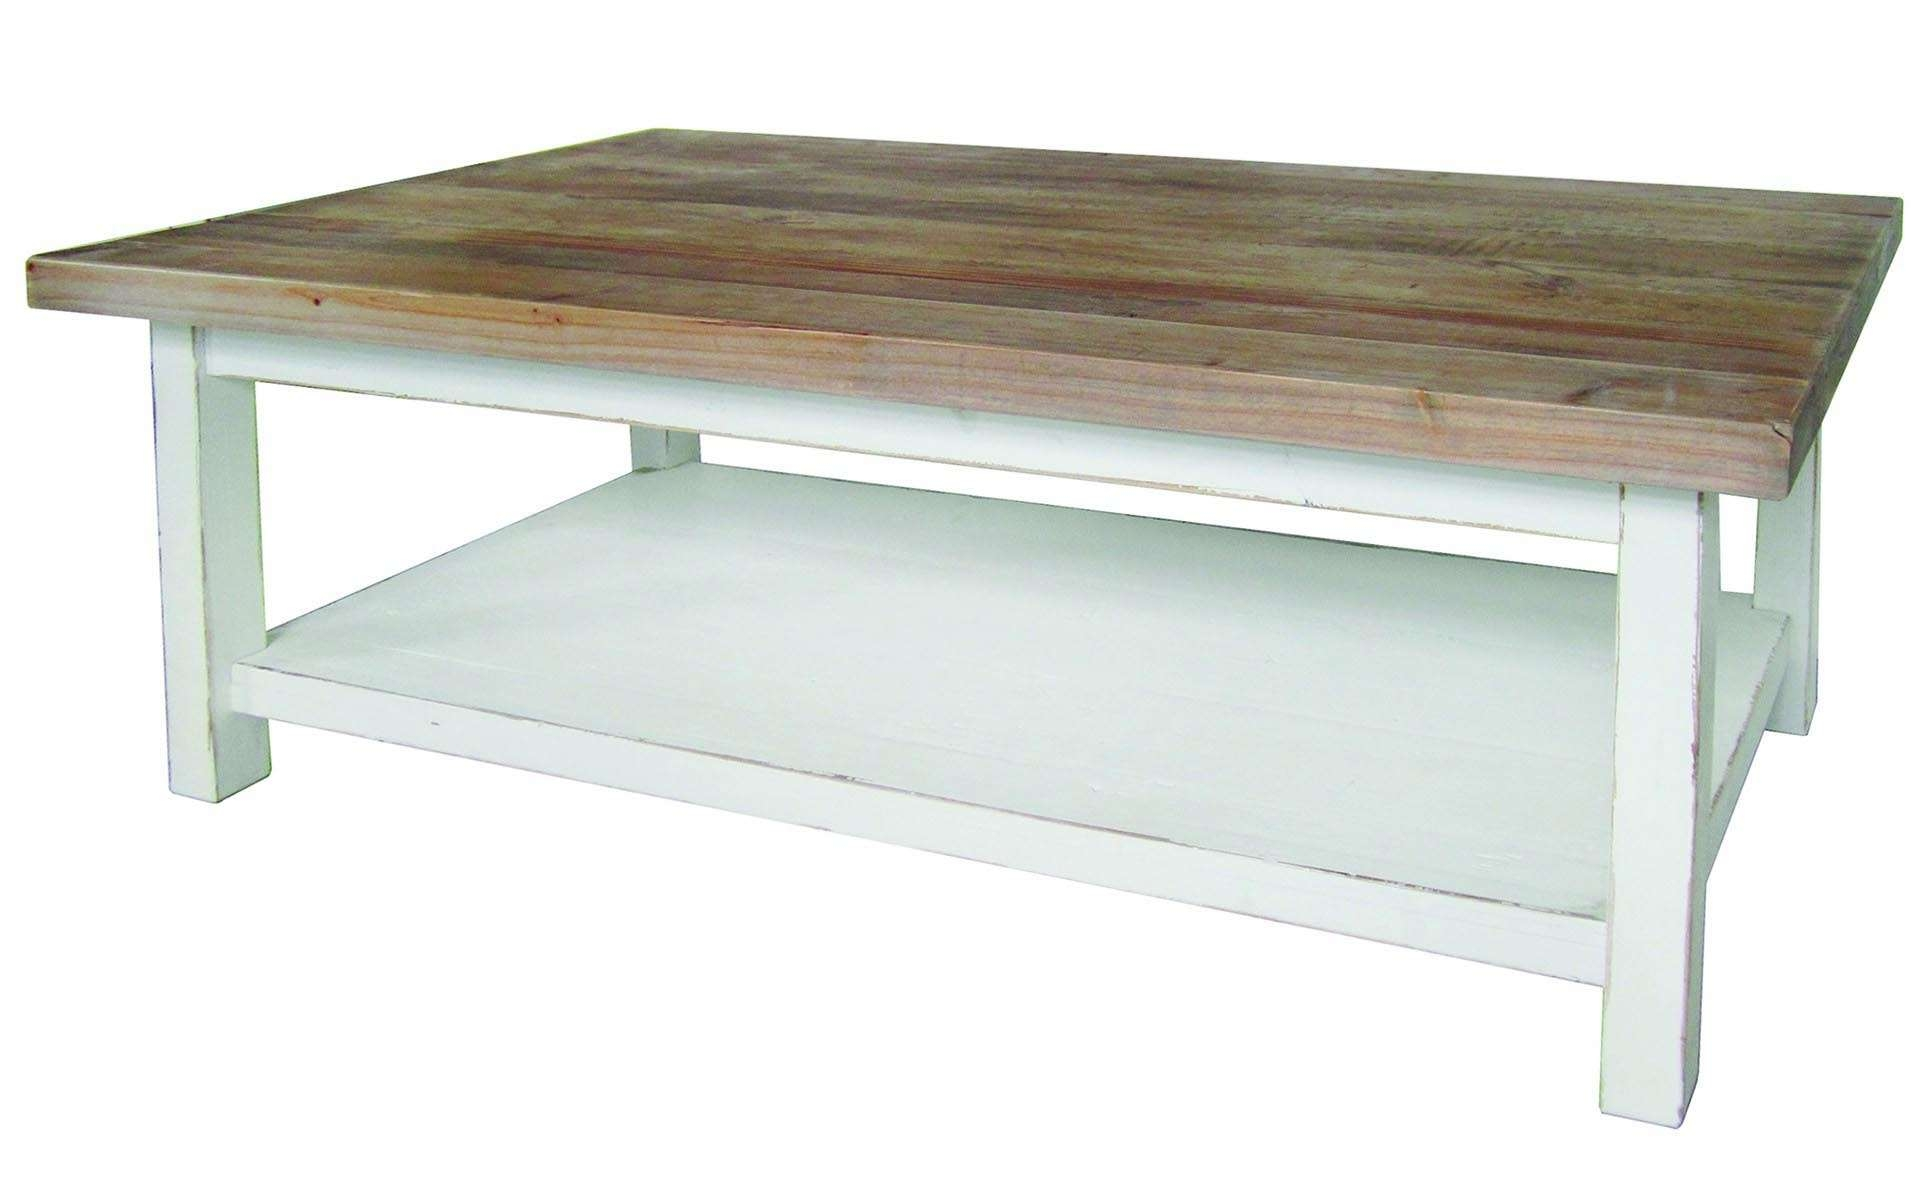 Popular Pine Coffee Tables With Storage With Regard To White Pine Coffee Table (View 18 of 20)